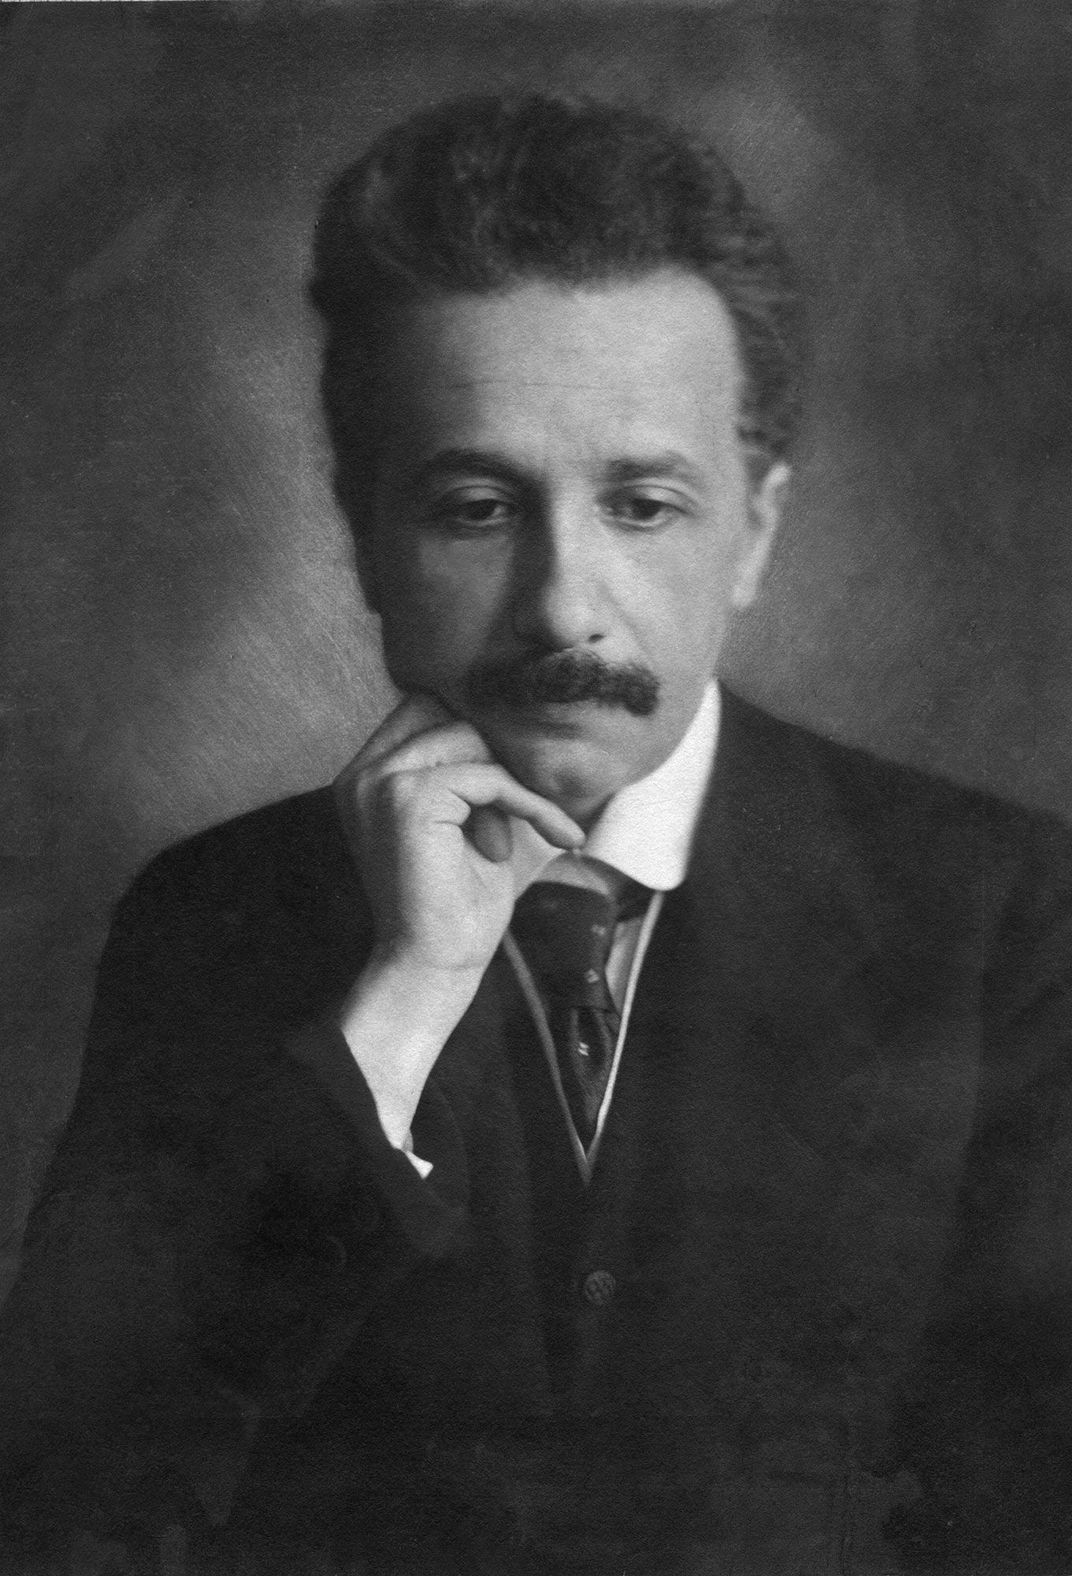 Young Einstein